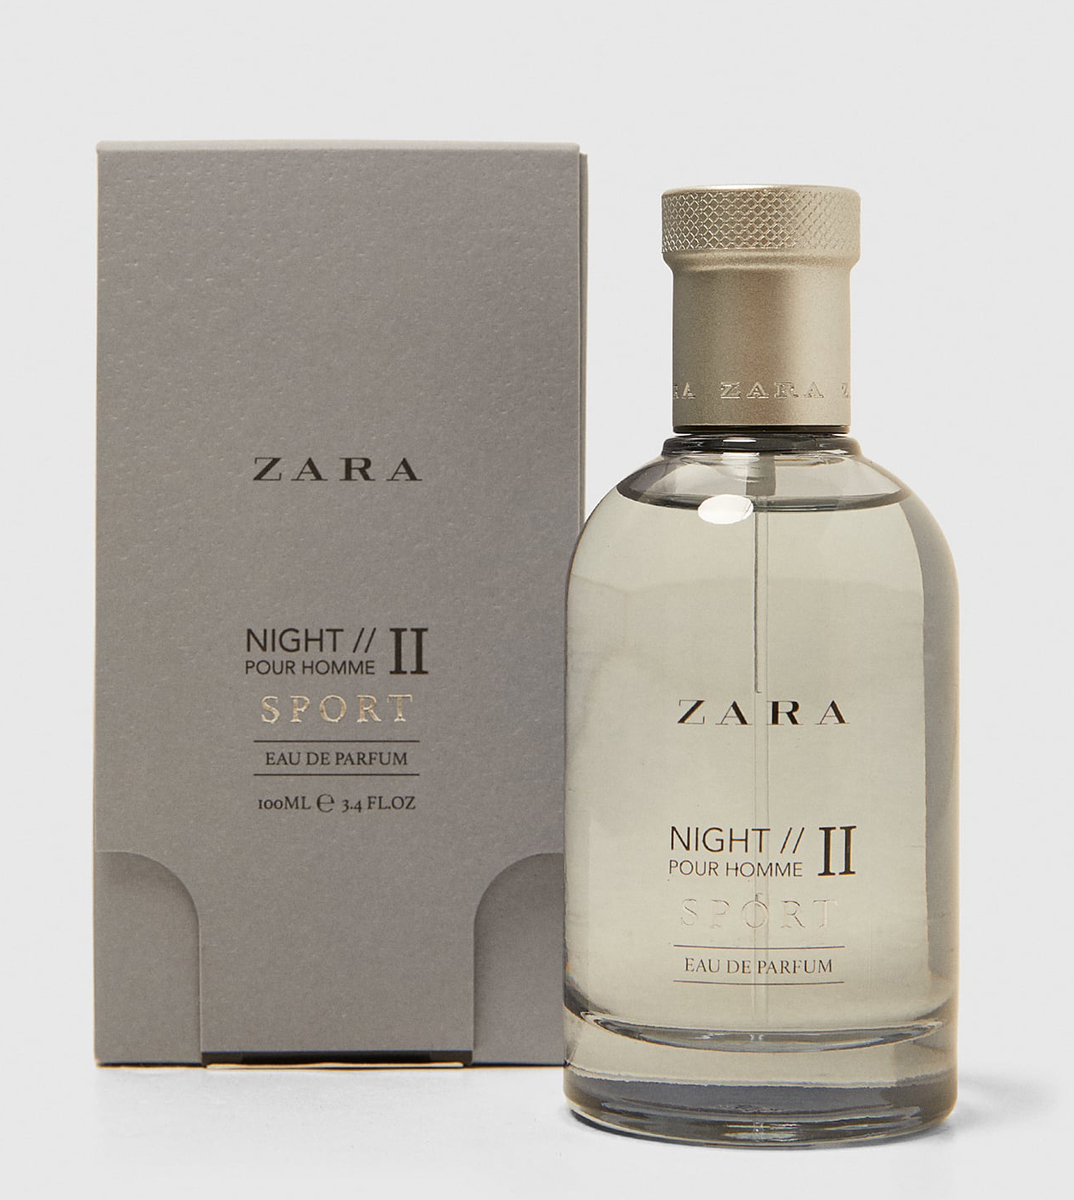 e948fee9222b Zara Night Pour Homme II Sport Zara cologne - a new fragrance for ...